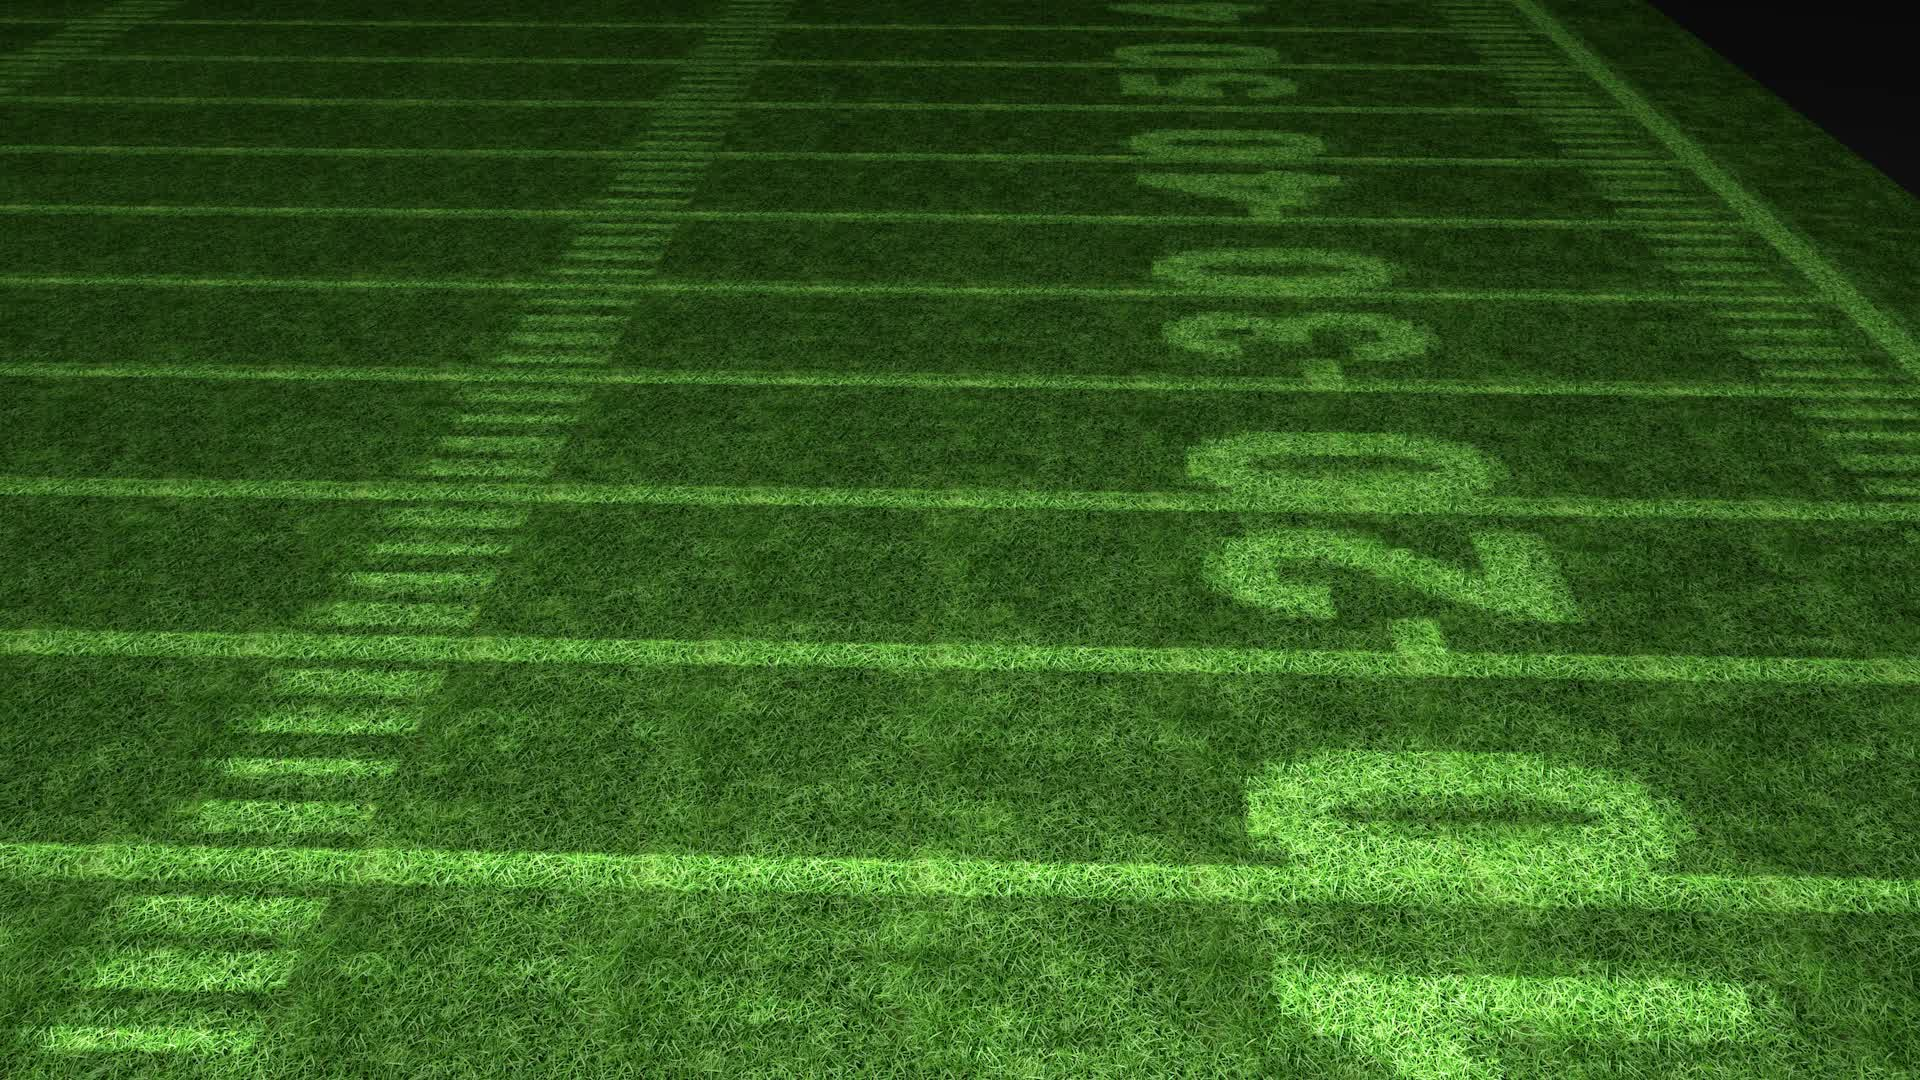 Football Field Backgrounds | PixelsTalk.Net